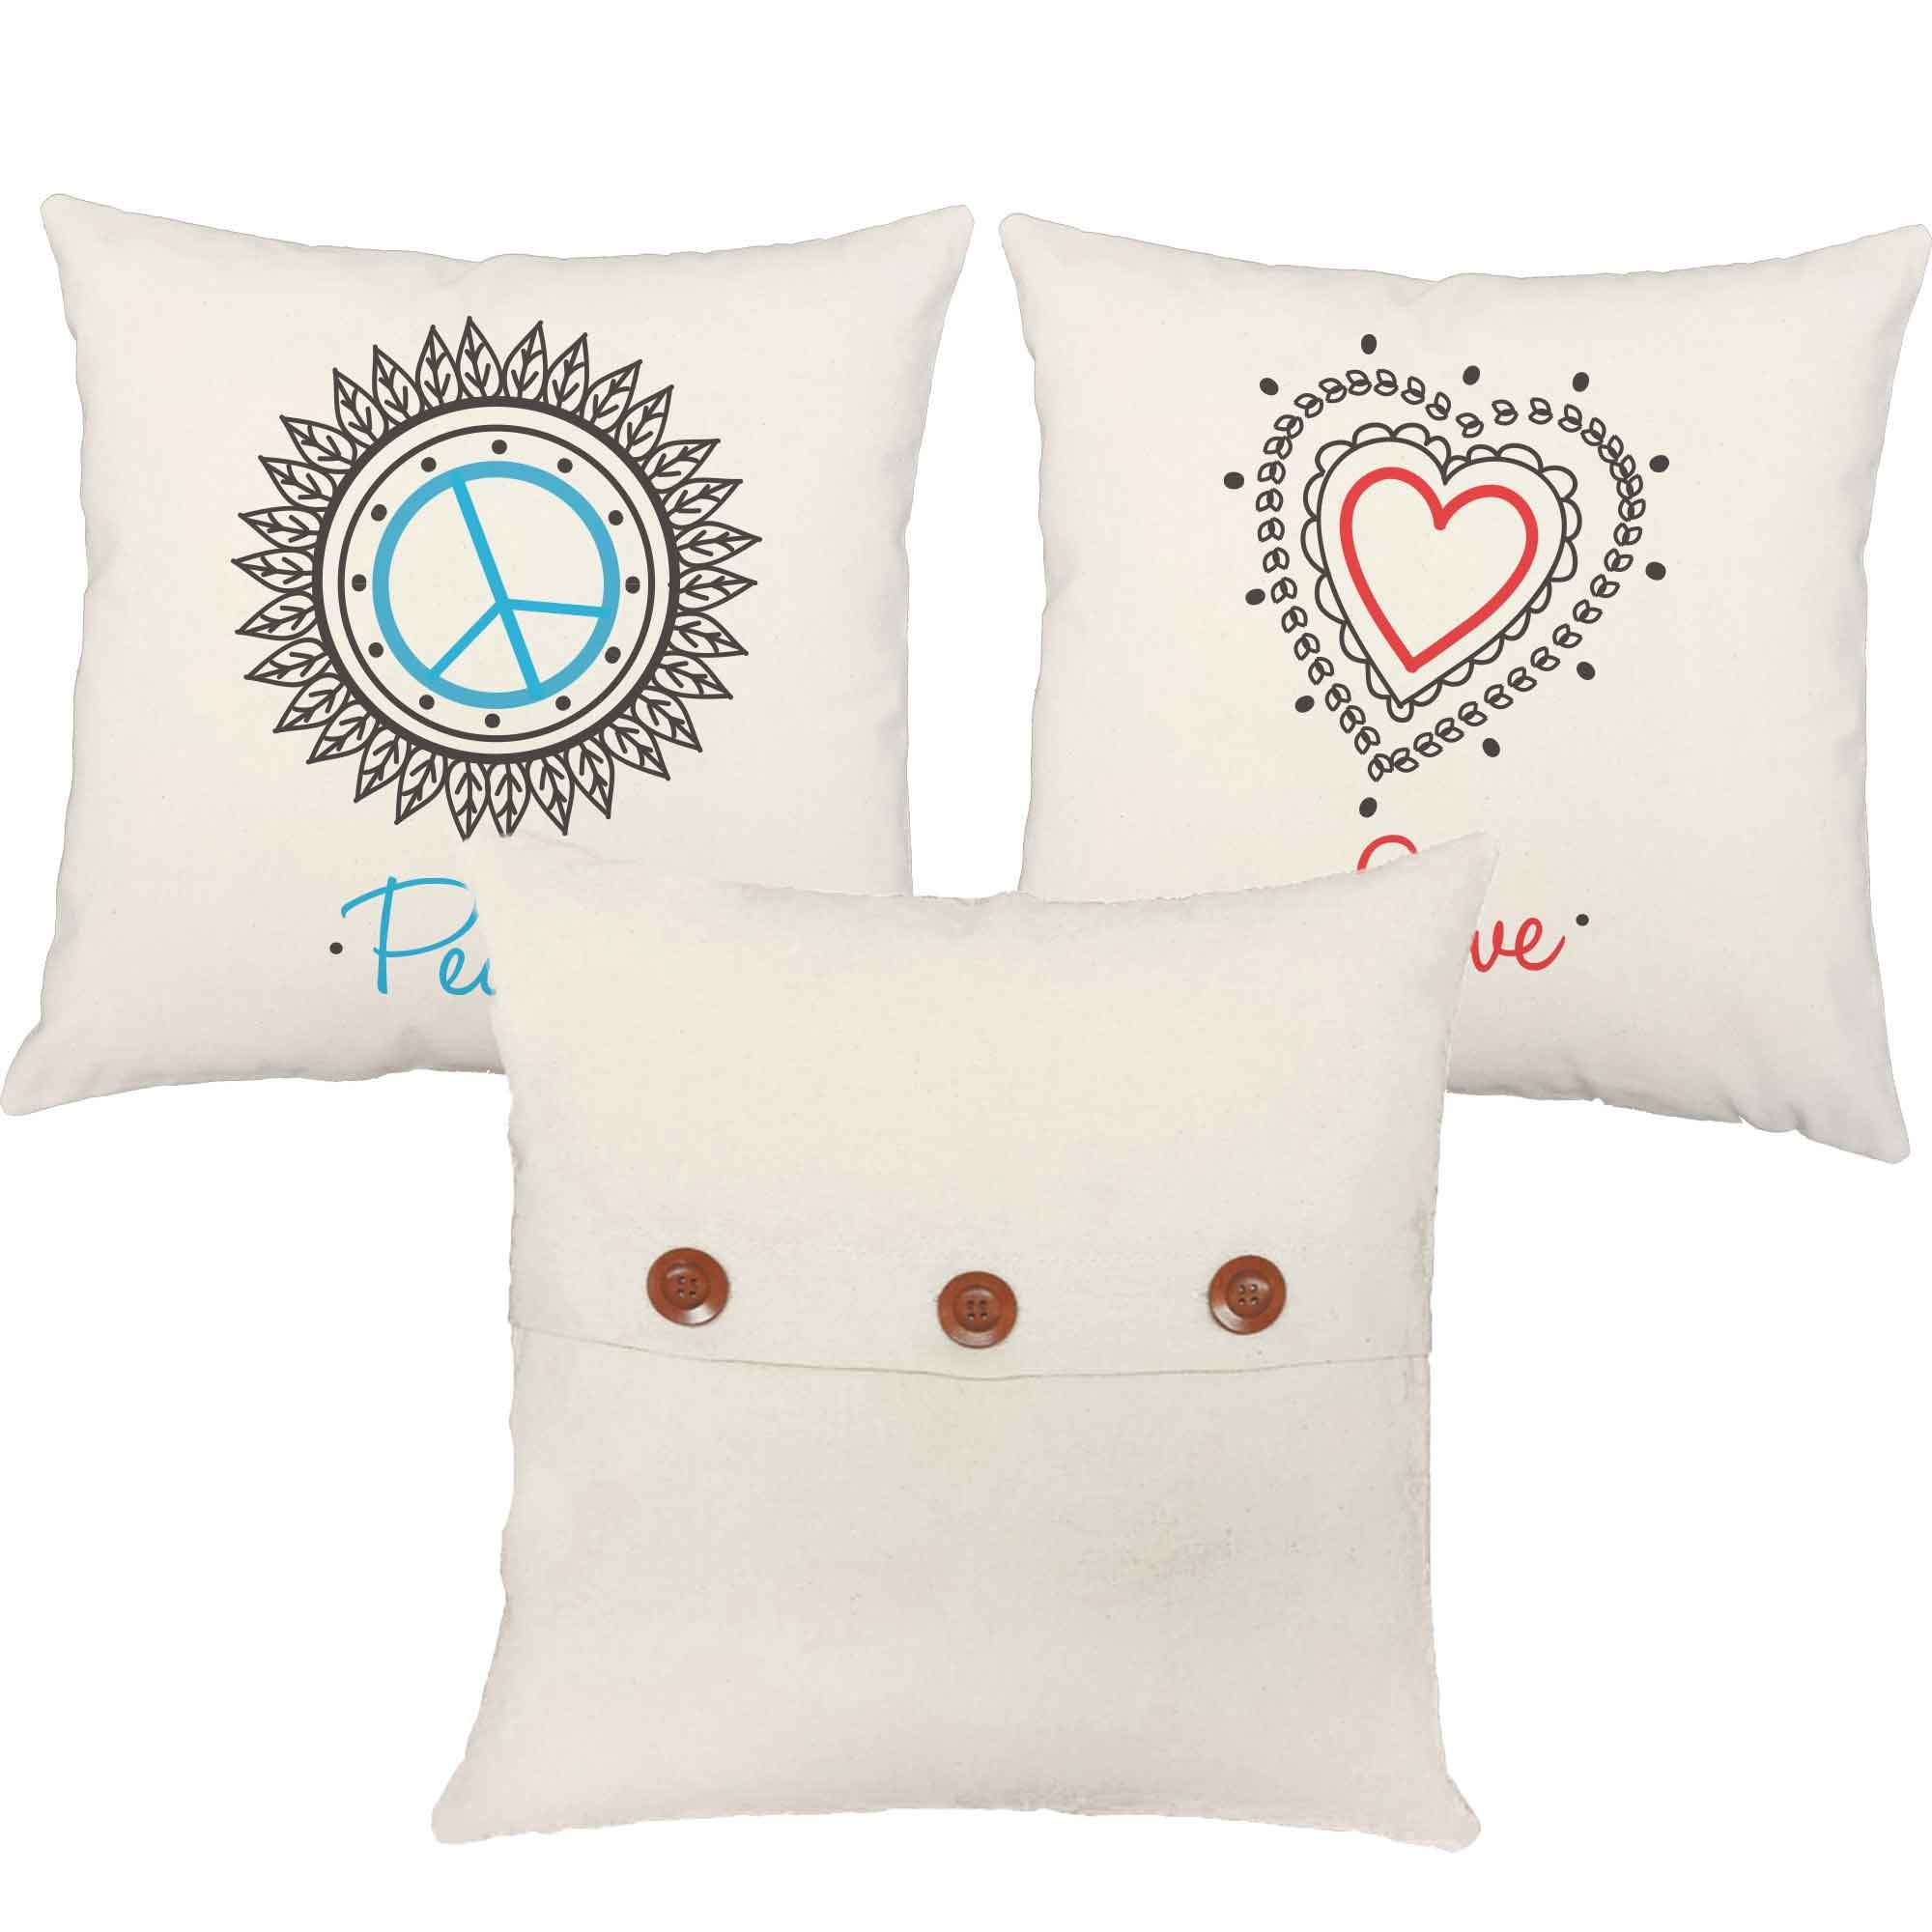 Set of 3 RoomCraft Peace Love Namaste Throw Pillow Covers 20x20 Inch Square White Outdoor Yoga Shams by RoomCraft (Image #3)